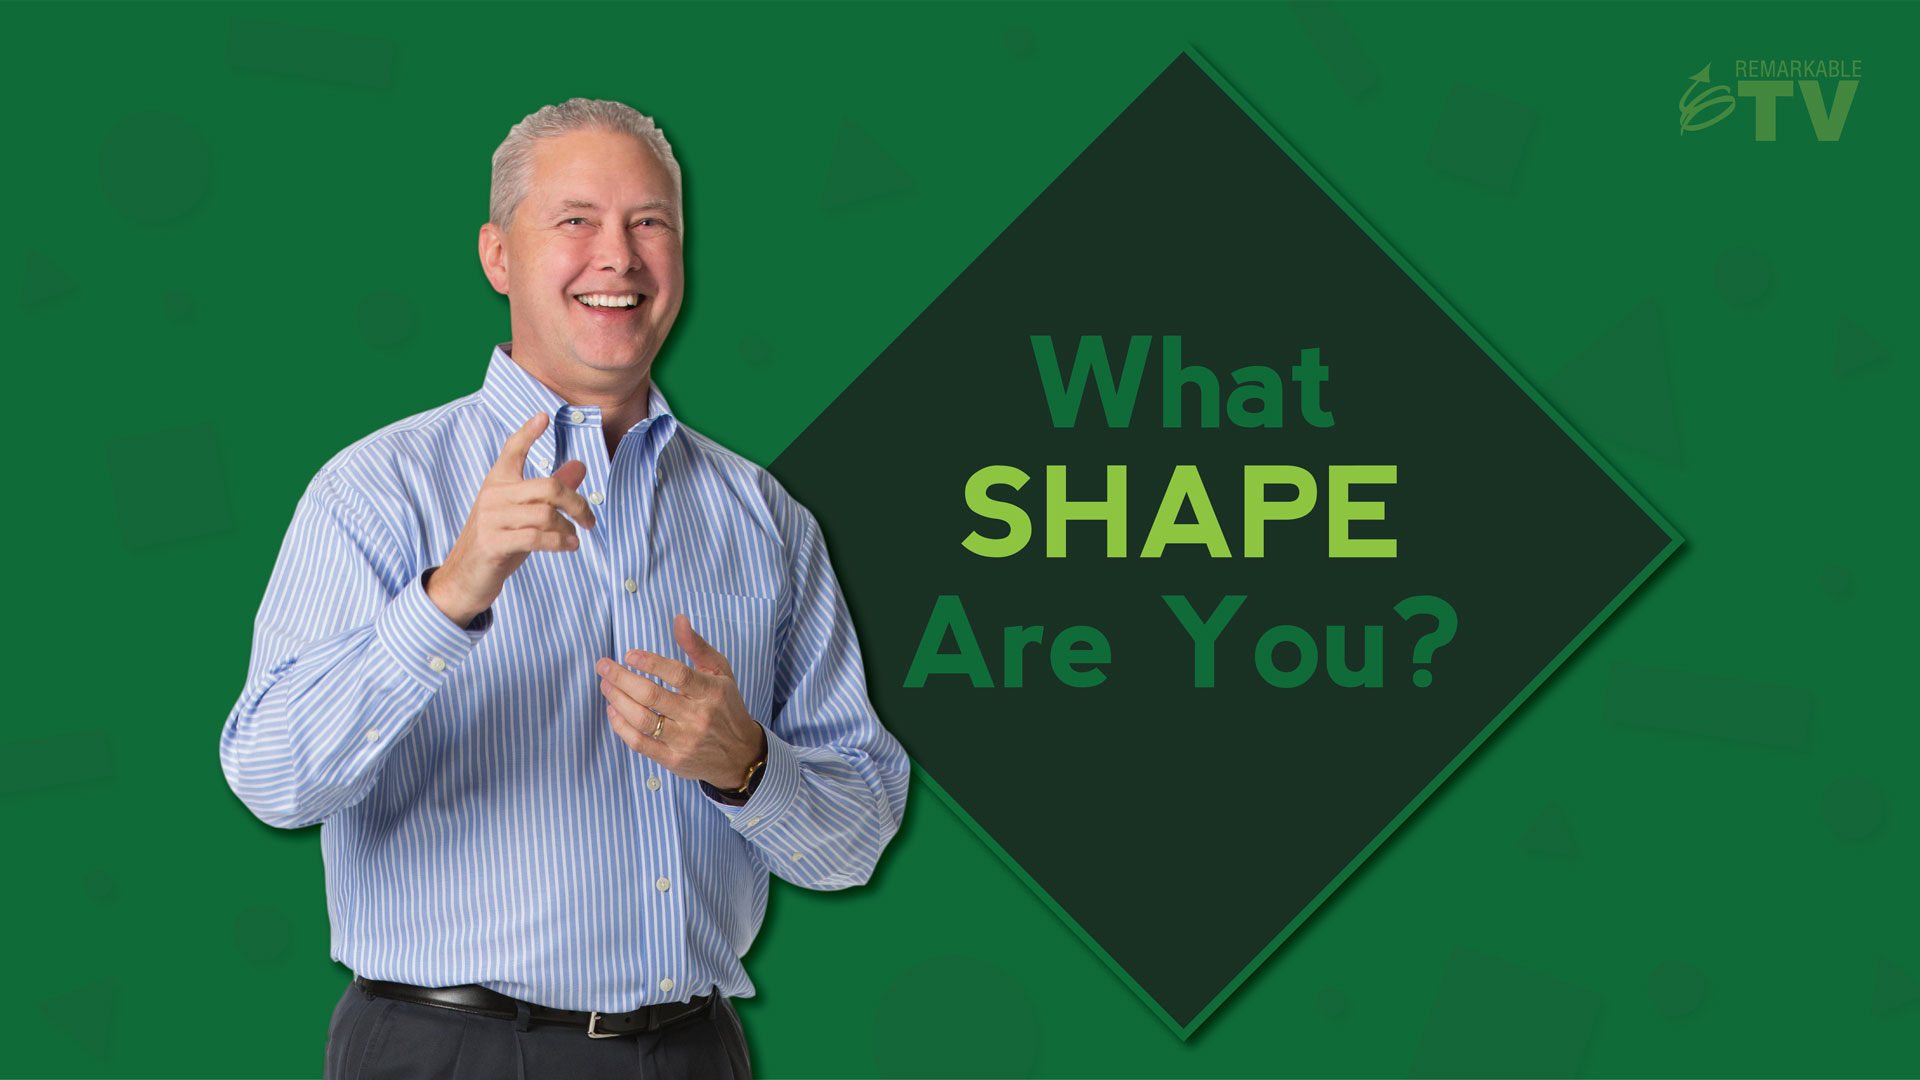 What Shape Are You - Remarkable TV with Kevin Eikenberry